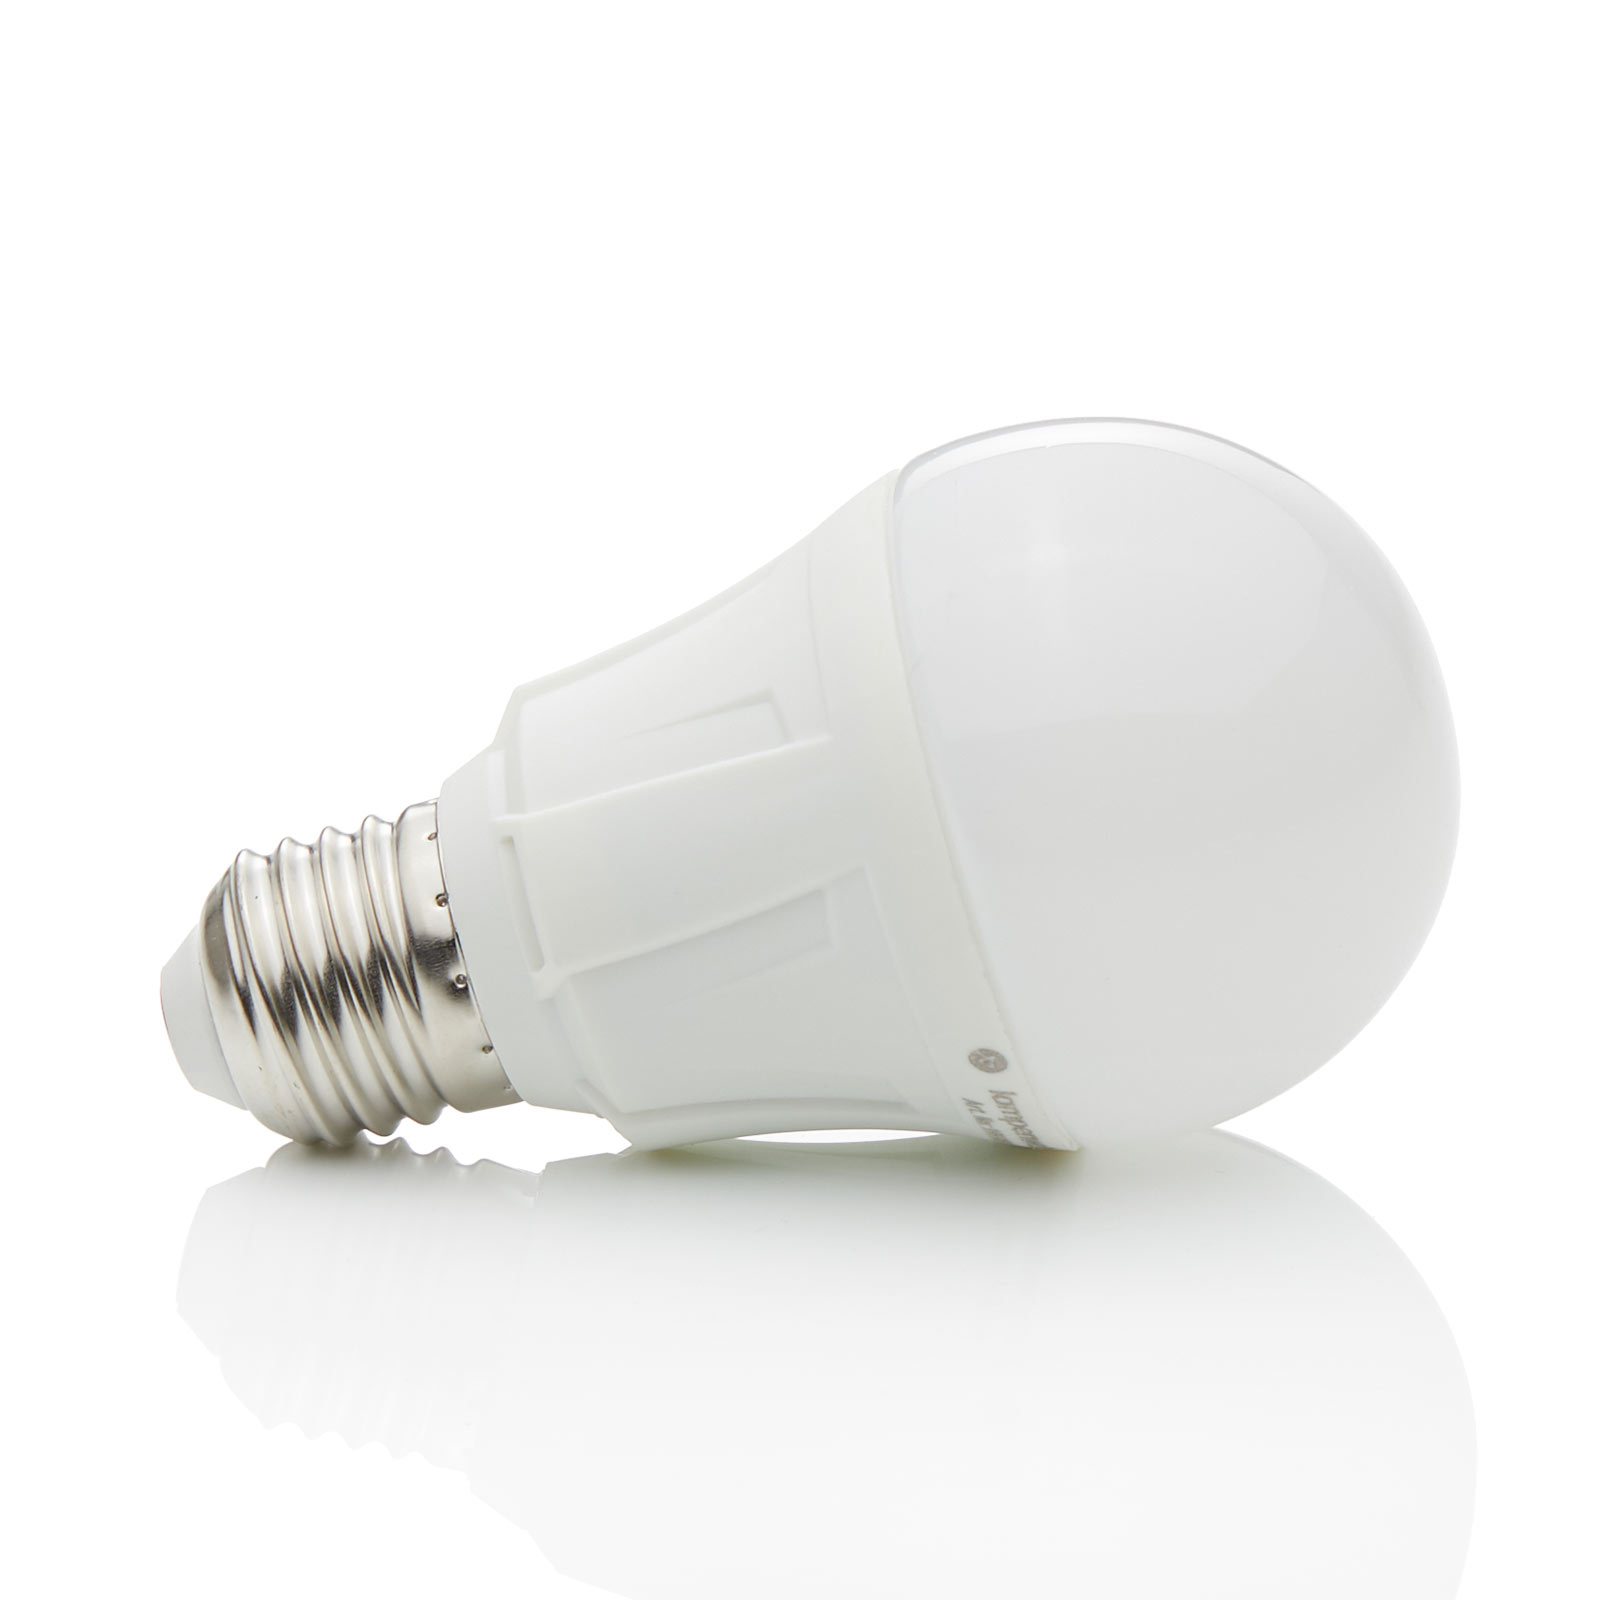 Ampoule LED E27 11W 830 blanc chaud